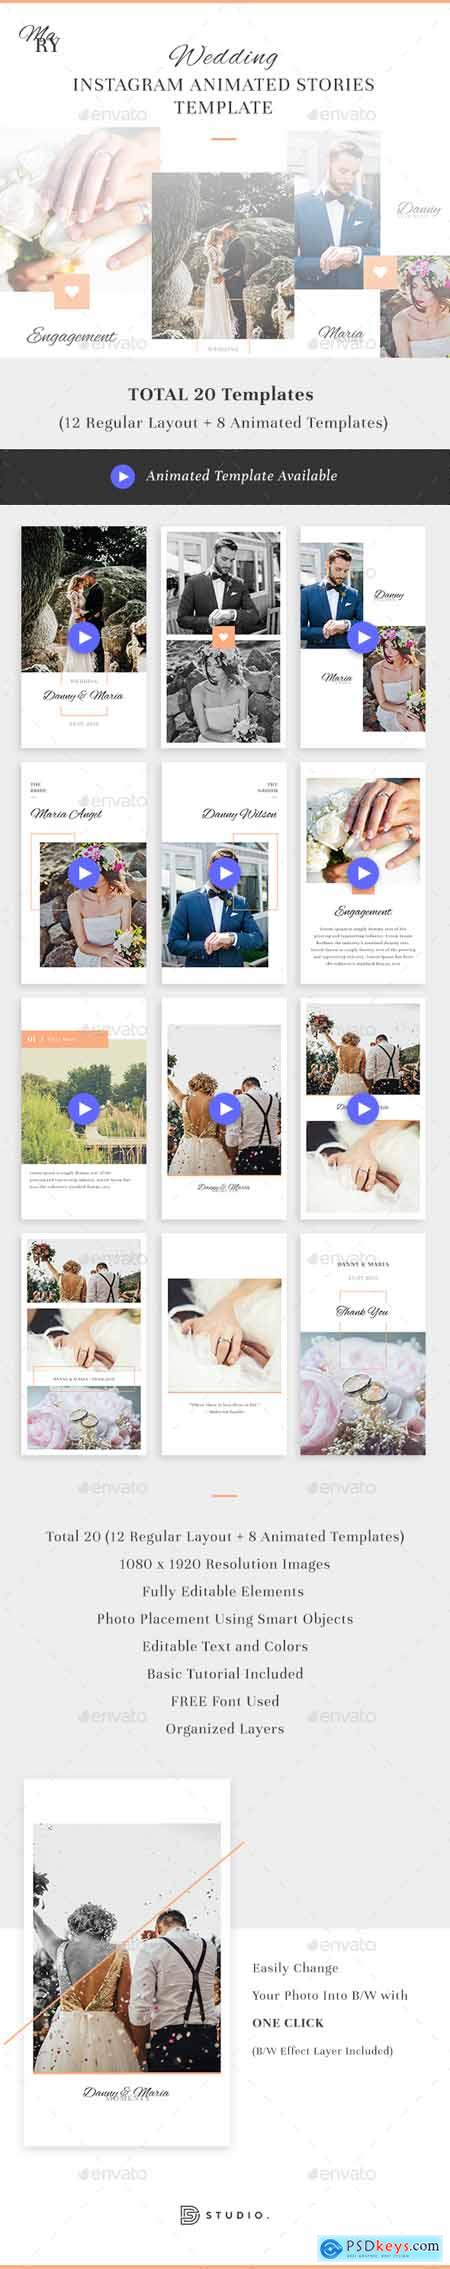 Graphicriver Mary - Wedding Instagram Animated Stories